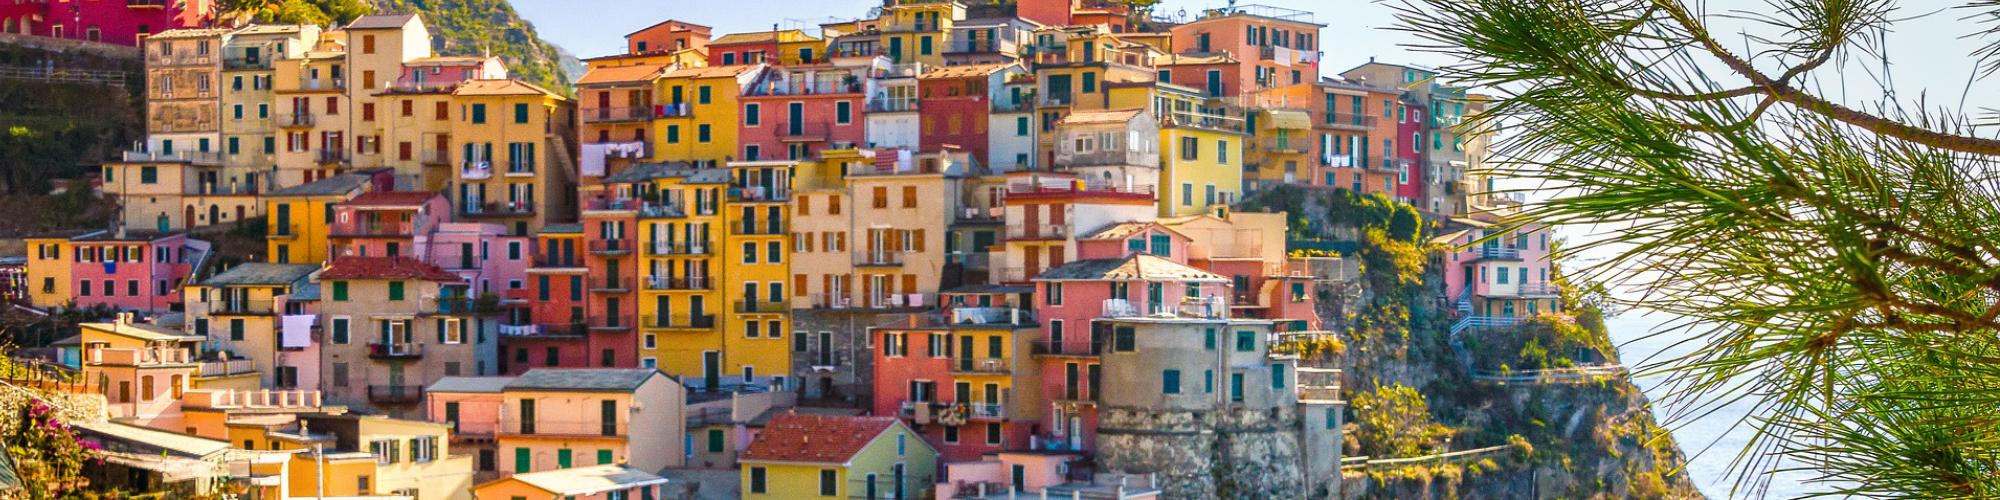 Homes on hill, Italian coast